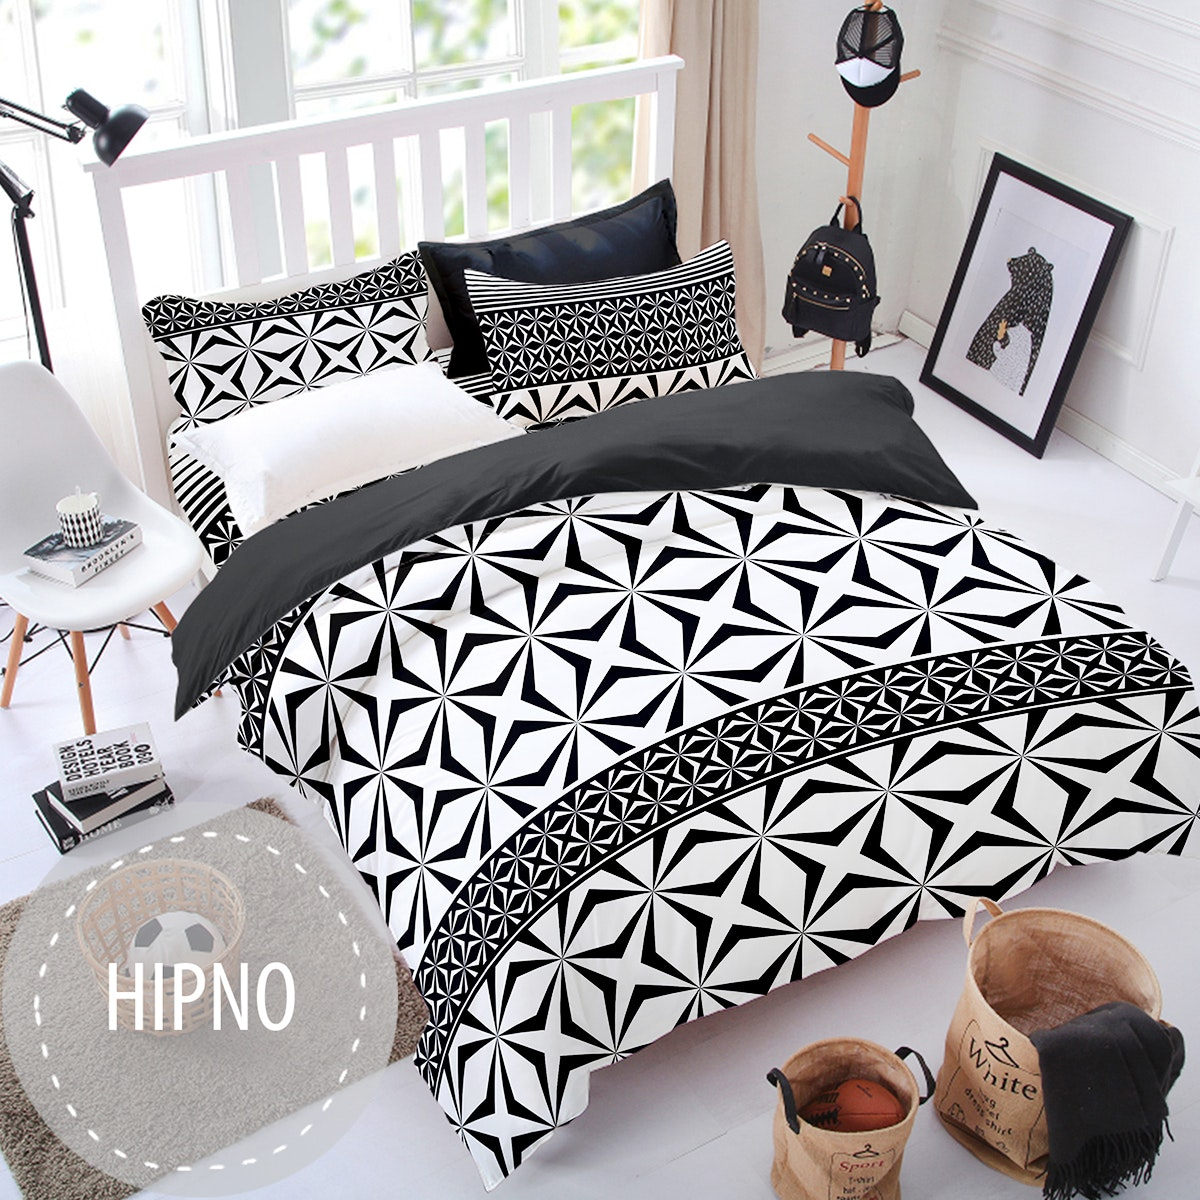 Pesona Sprei Disperse Hipno uk 160 T 20